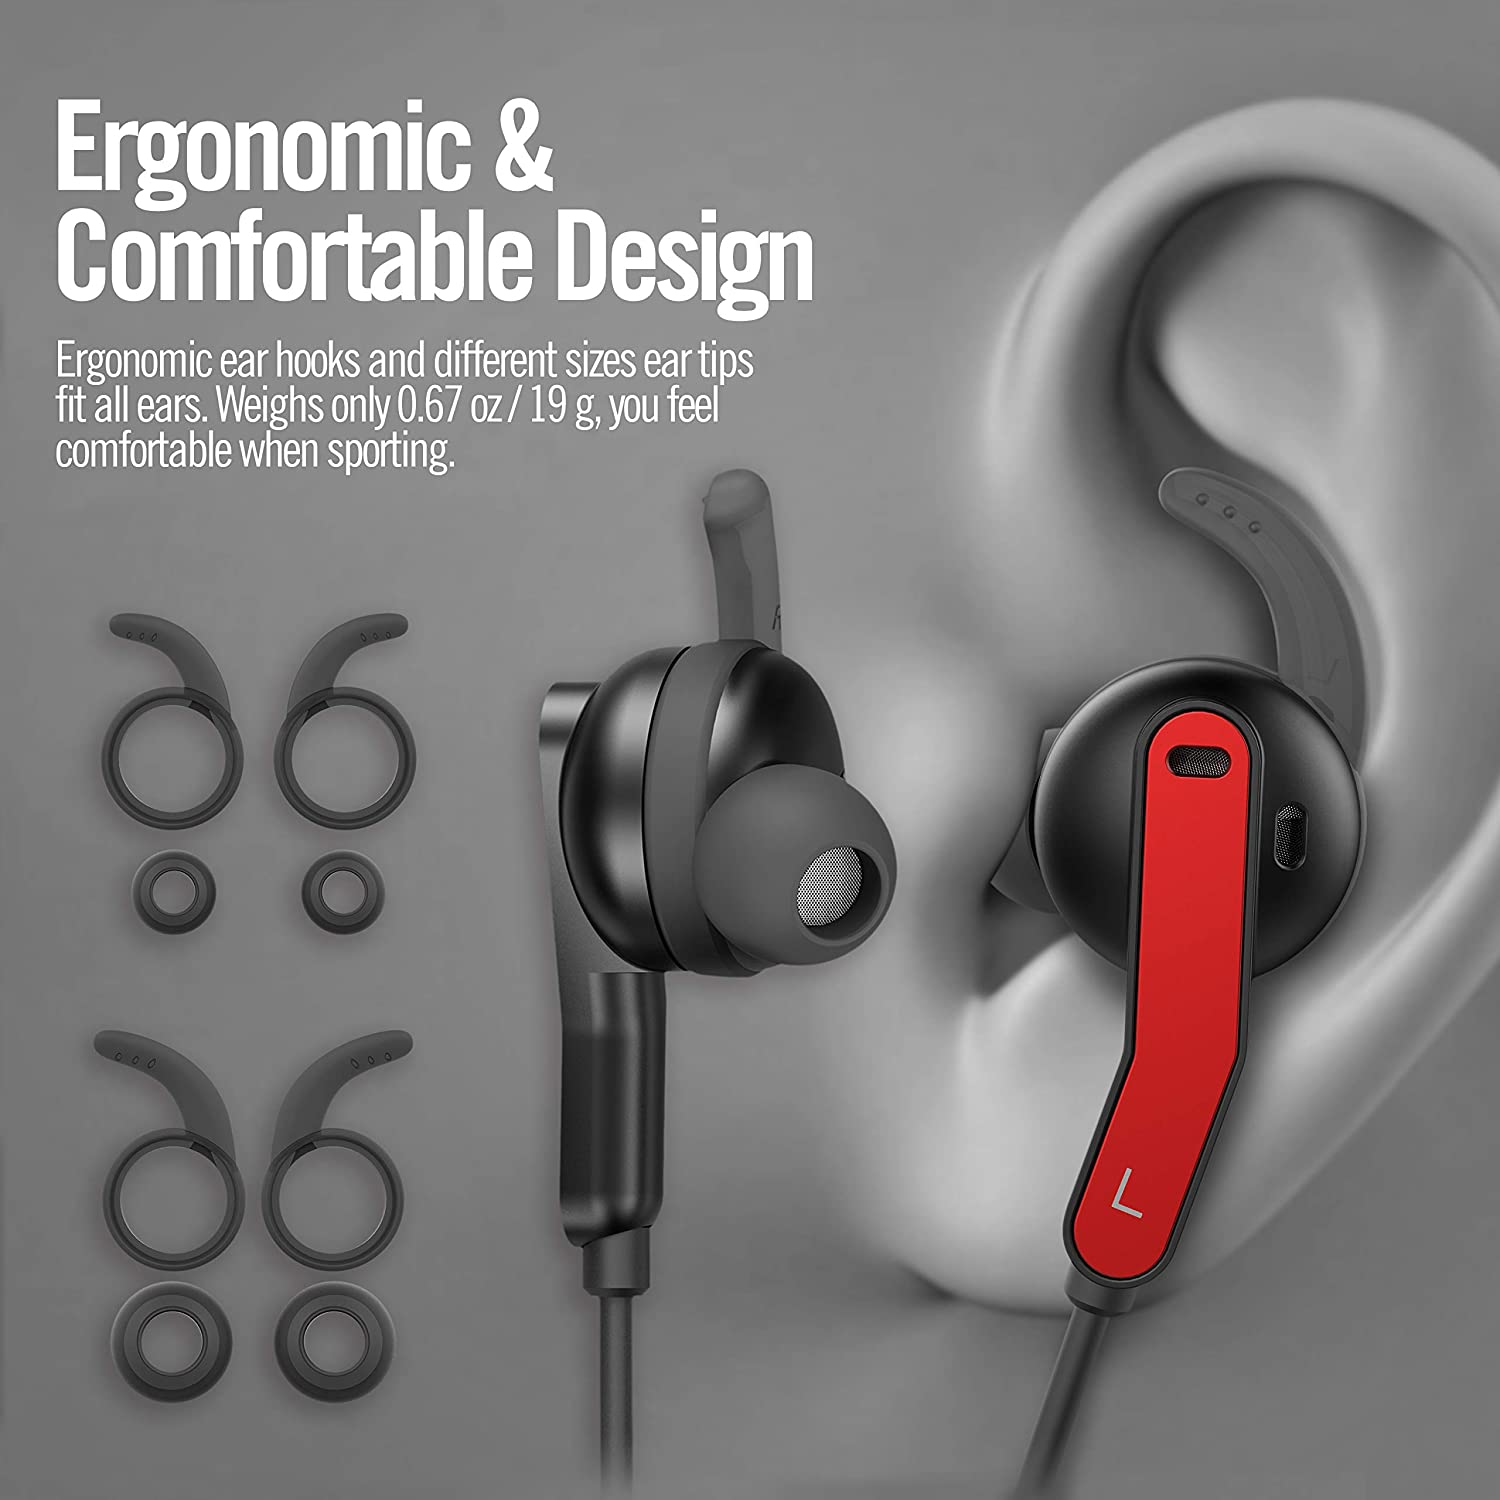 Active Noise Cancelling Headphones AKAMATE Wireless Neckband Headset Bluetooth V4.2 in-Ear Waterproof Earbuds Magnetic Hi-Fi Stereo Sports Earphones Mic Carrying Bag